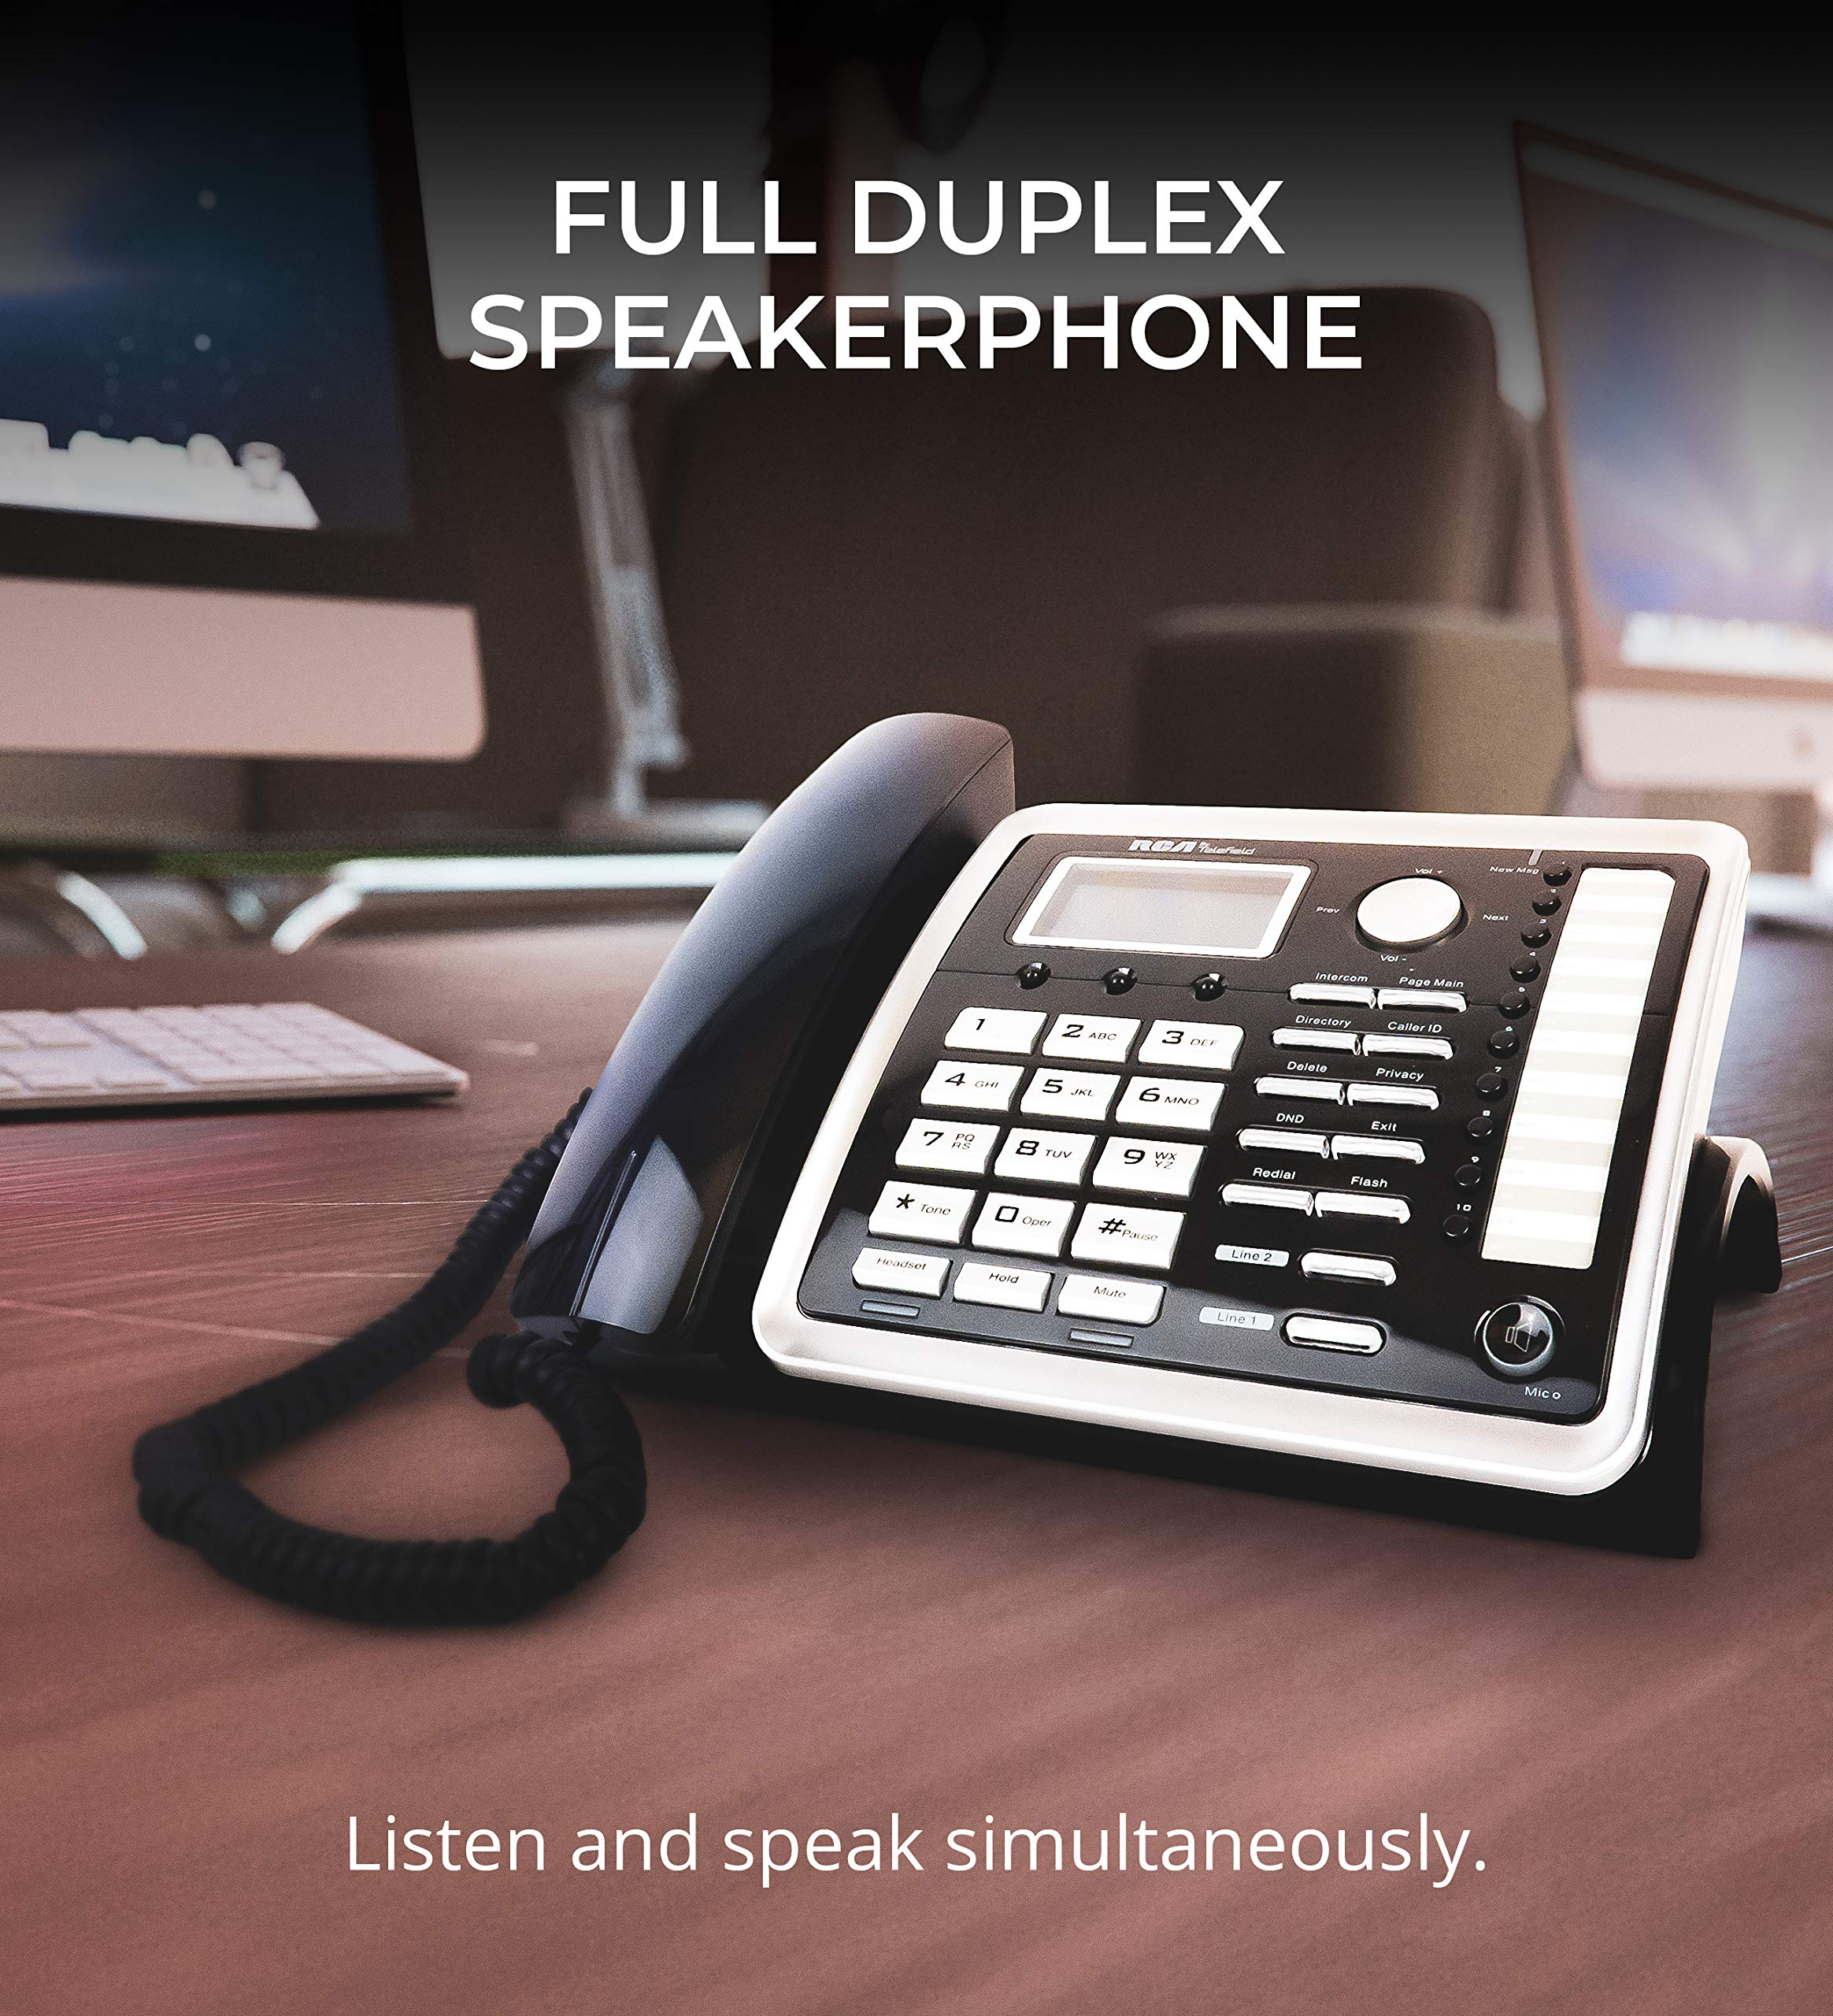 RCA 25260 2-Line Expandable Phone System - Full Duplex Telephone with Built-in Intercom Bundle with RCA 25055RE1 DECT 6.0 Cordless Accessory Handsets (3-Pack) and 6 Blucoil AA Batteries by blucoil (Image #8)